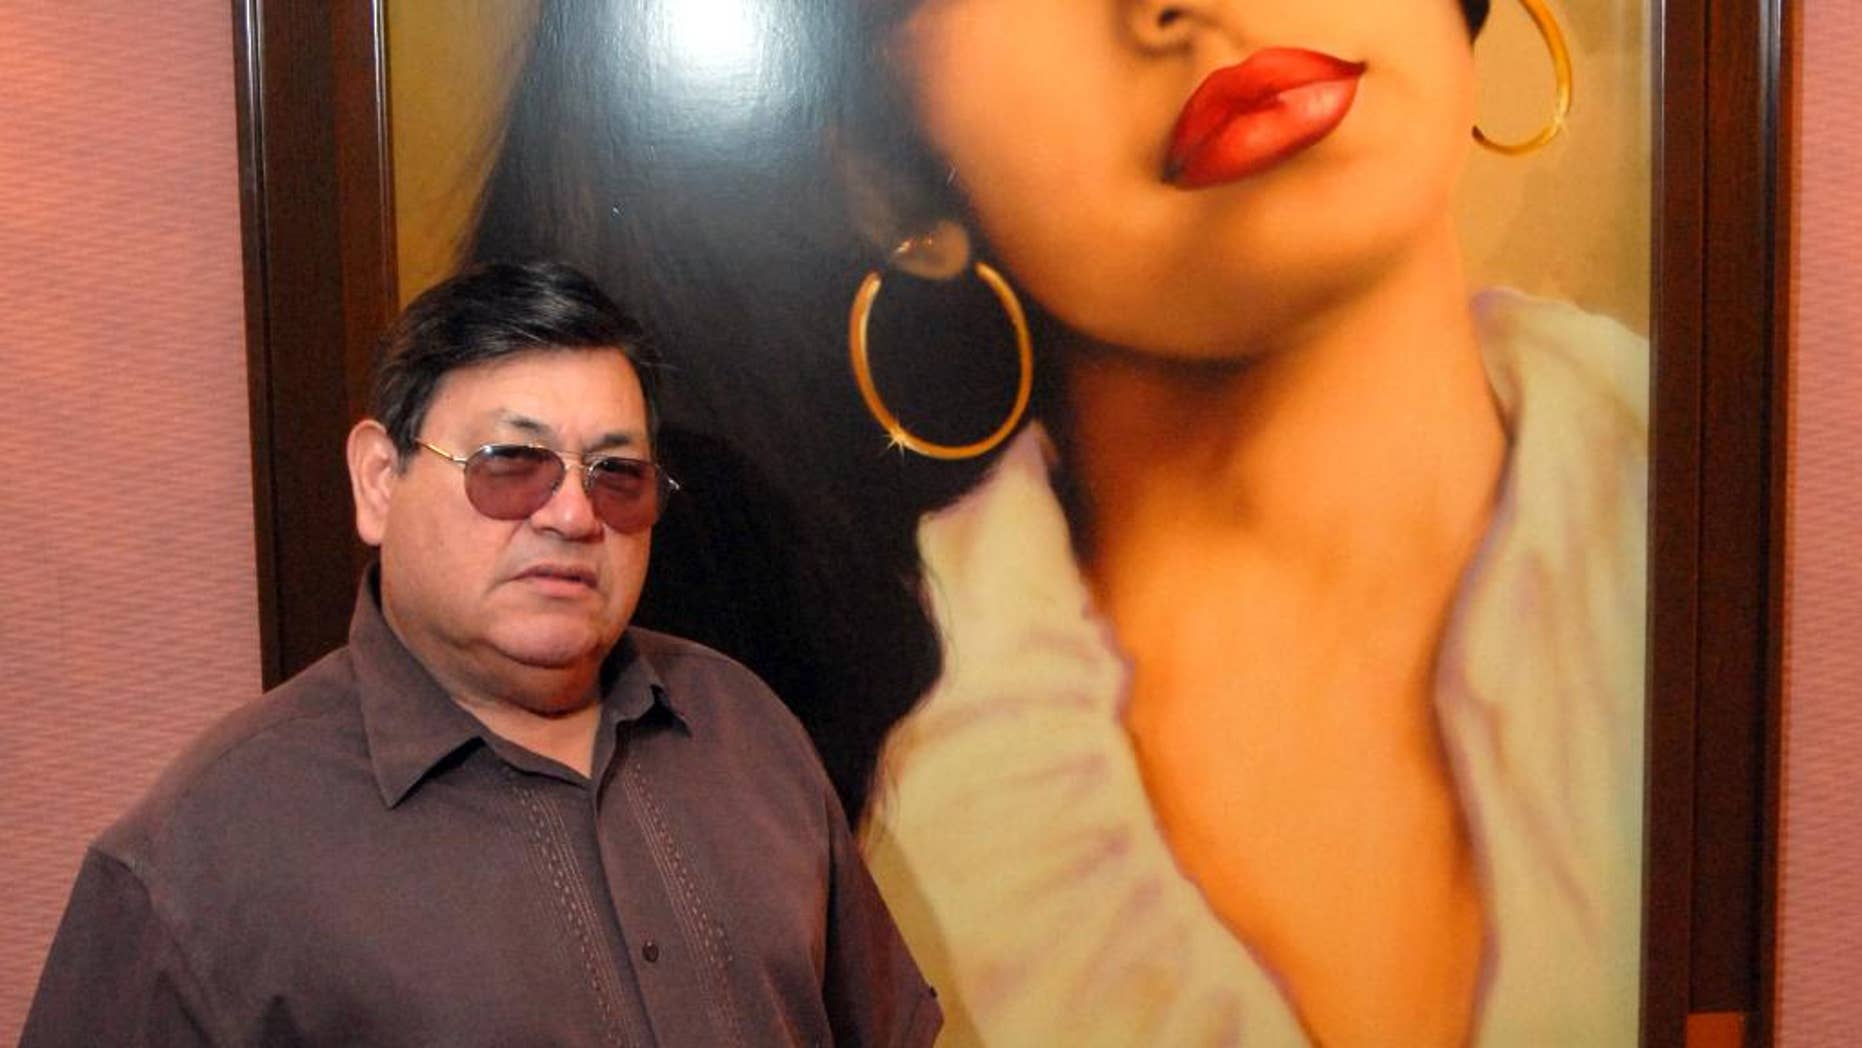 In this June 24, 2011, file photo, Abraham Quintanilla, the father of the late singer Selena, poses in front of an air brush work of art that a fan gave him after her death, hanging in the studio at Q Productions in Corpus Christi, Texas, where Selena made her last recording.